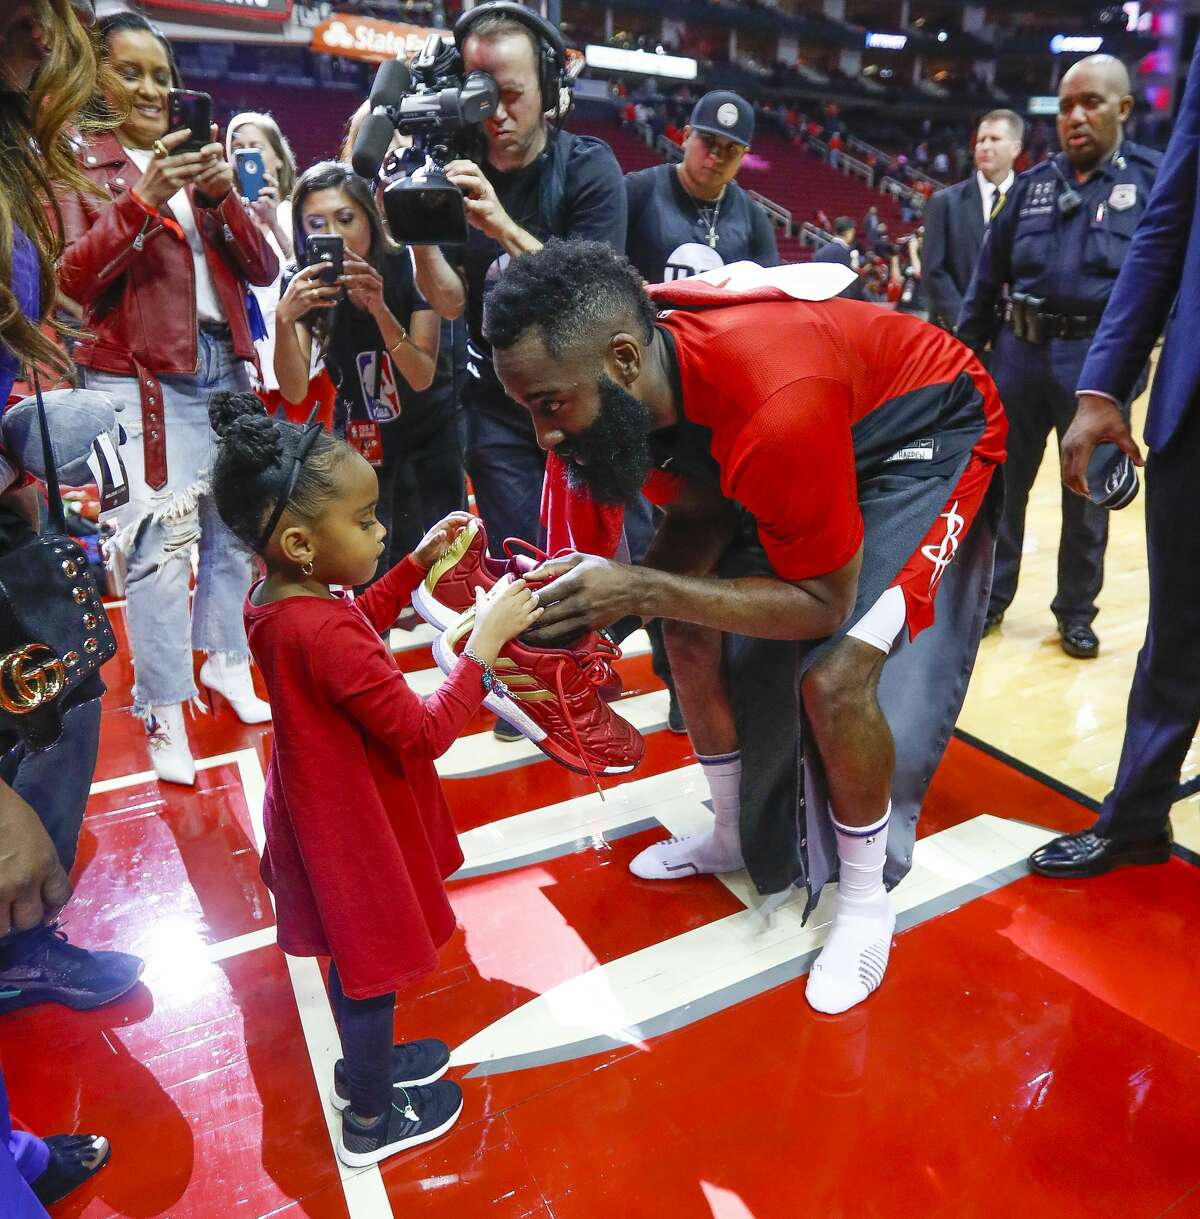 Houston Rockets guard James Harden (13) gives his shoes to Taylor James after the Rockets win over the Utah Jazz in the first game of the first round of the NBA playoffs at Toyota Center, Sunday, April 14, 2019, in Houston.